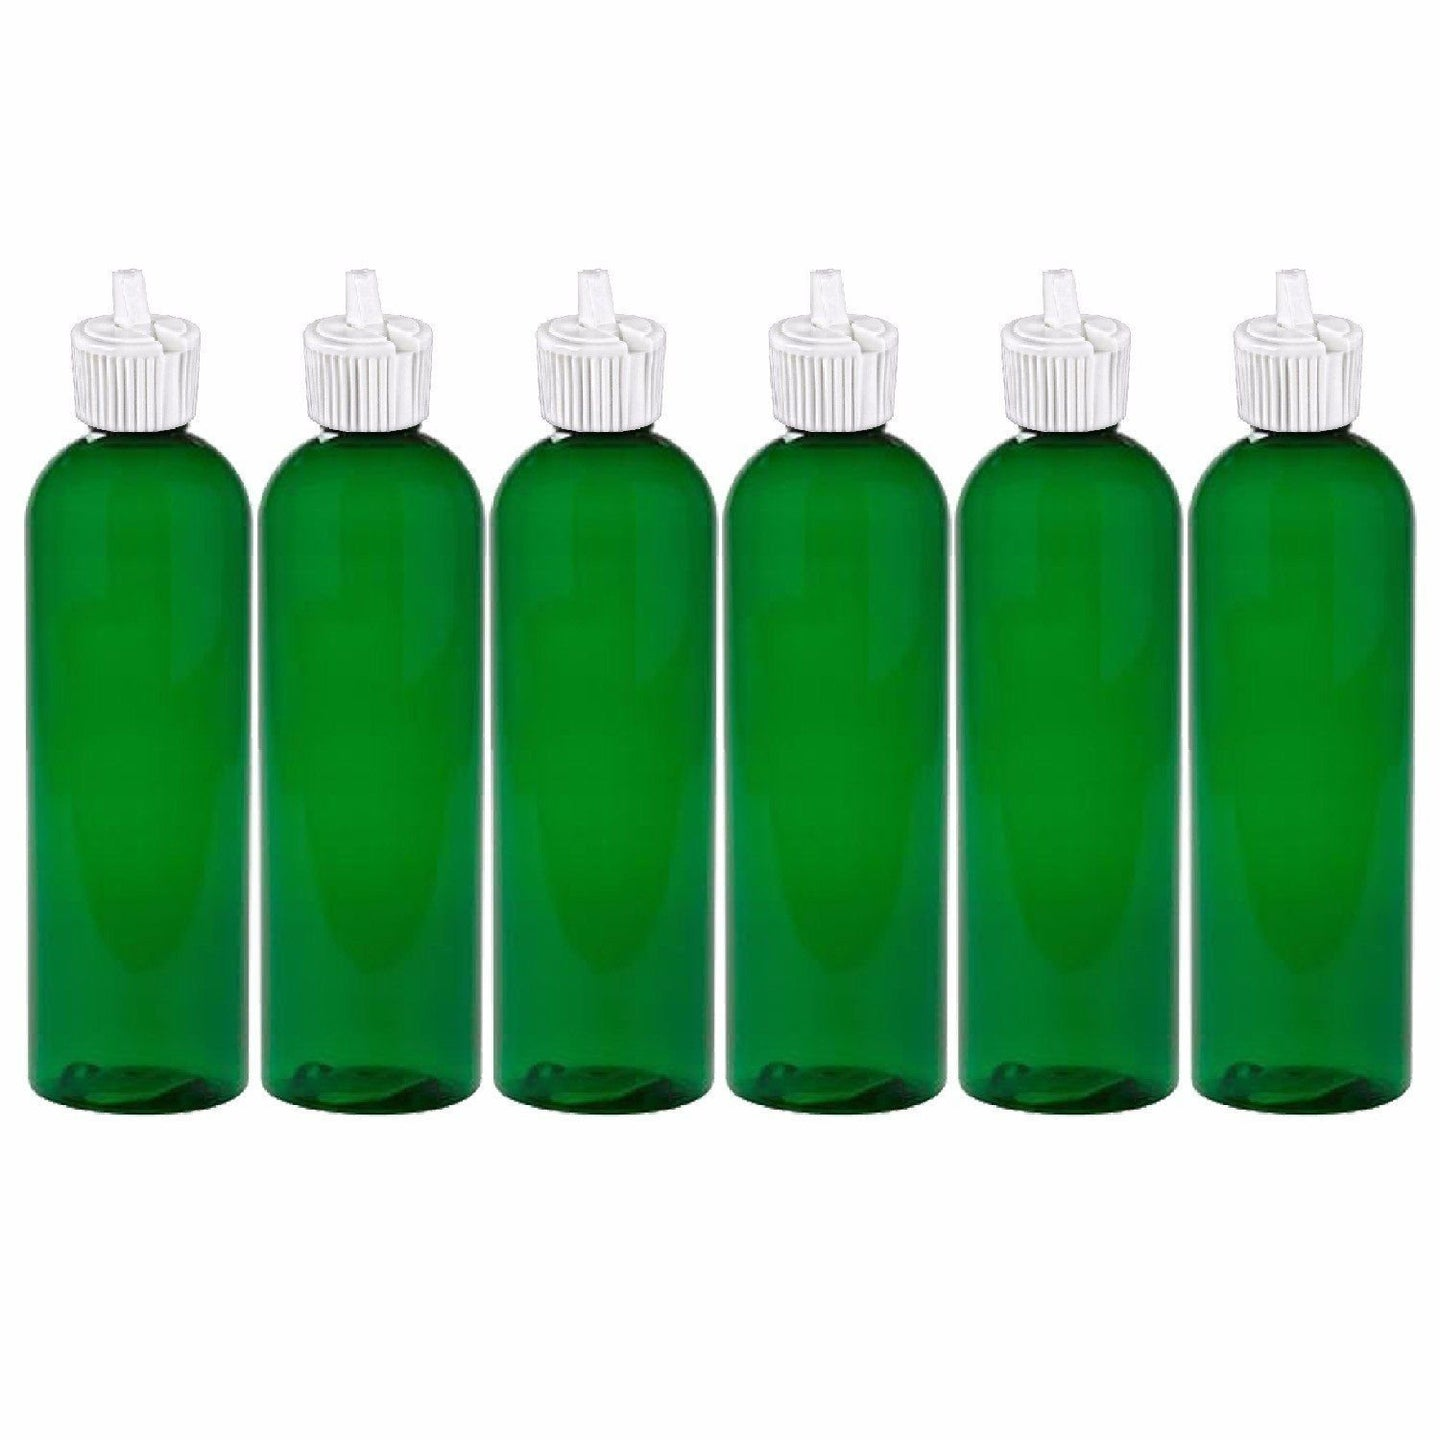 MoYo Natural Labs 4 oz Squirt Bottles, Squeezable Empty Travel Containers, BPA Free PET Plastic for Essential Oils and Liquids, Toiletry/Cosmetic Bottles (Neck 20-410) (Pack of 6, Green)